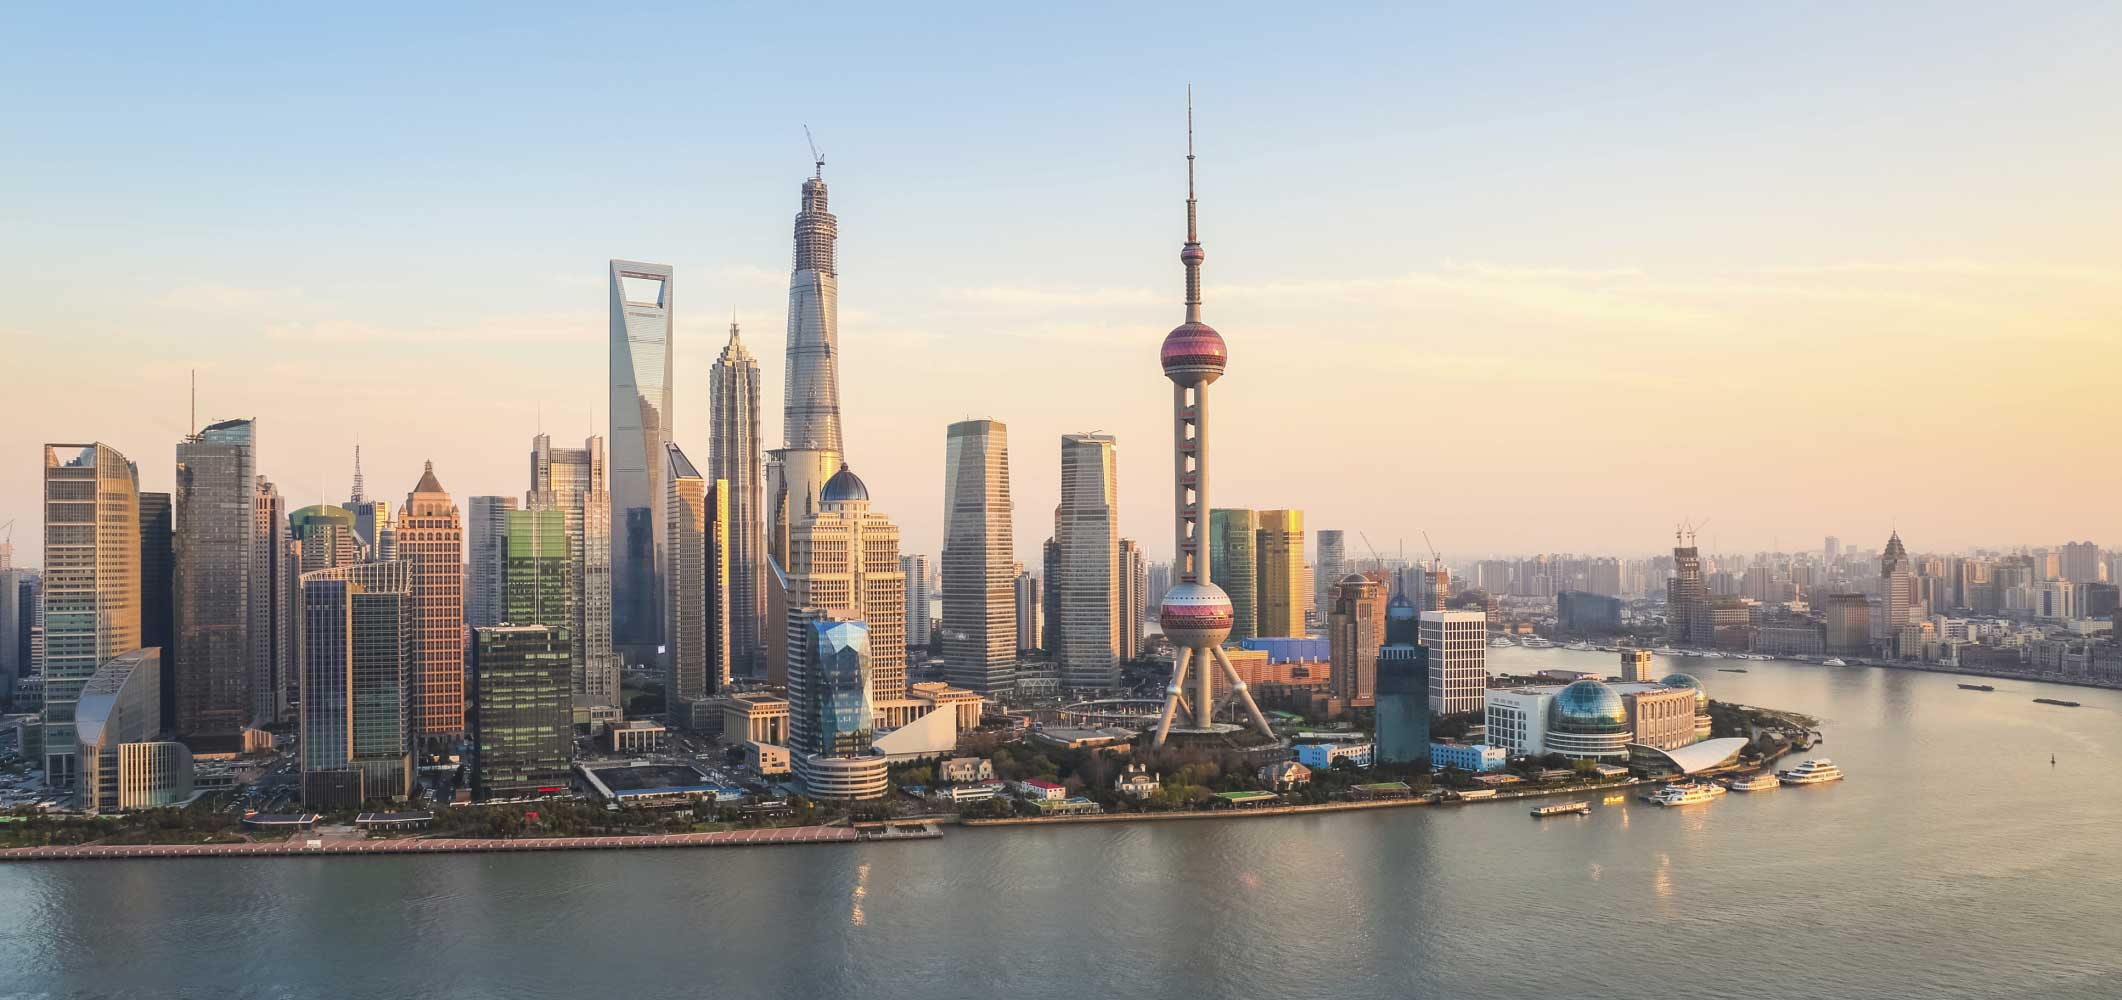 China – Water treatment plant equipped with ABB digital solutions